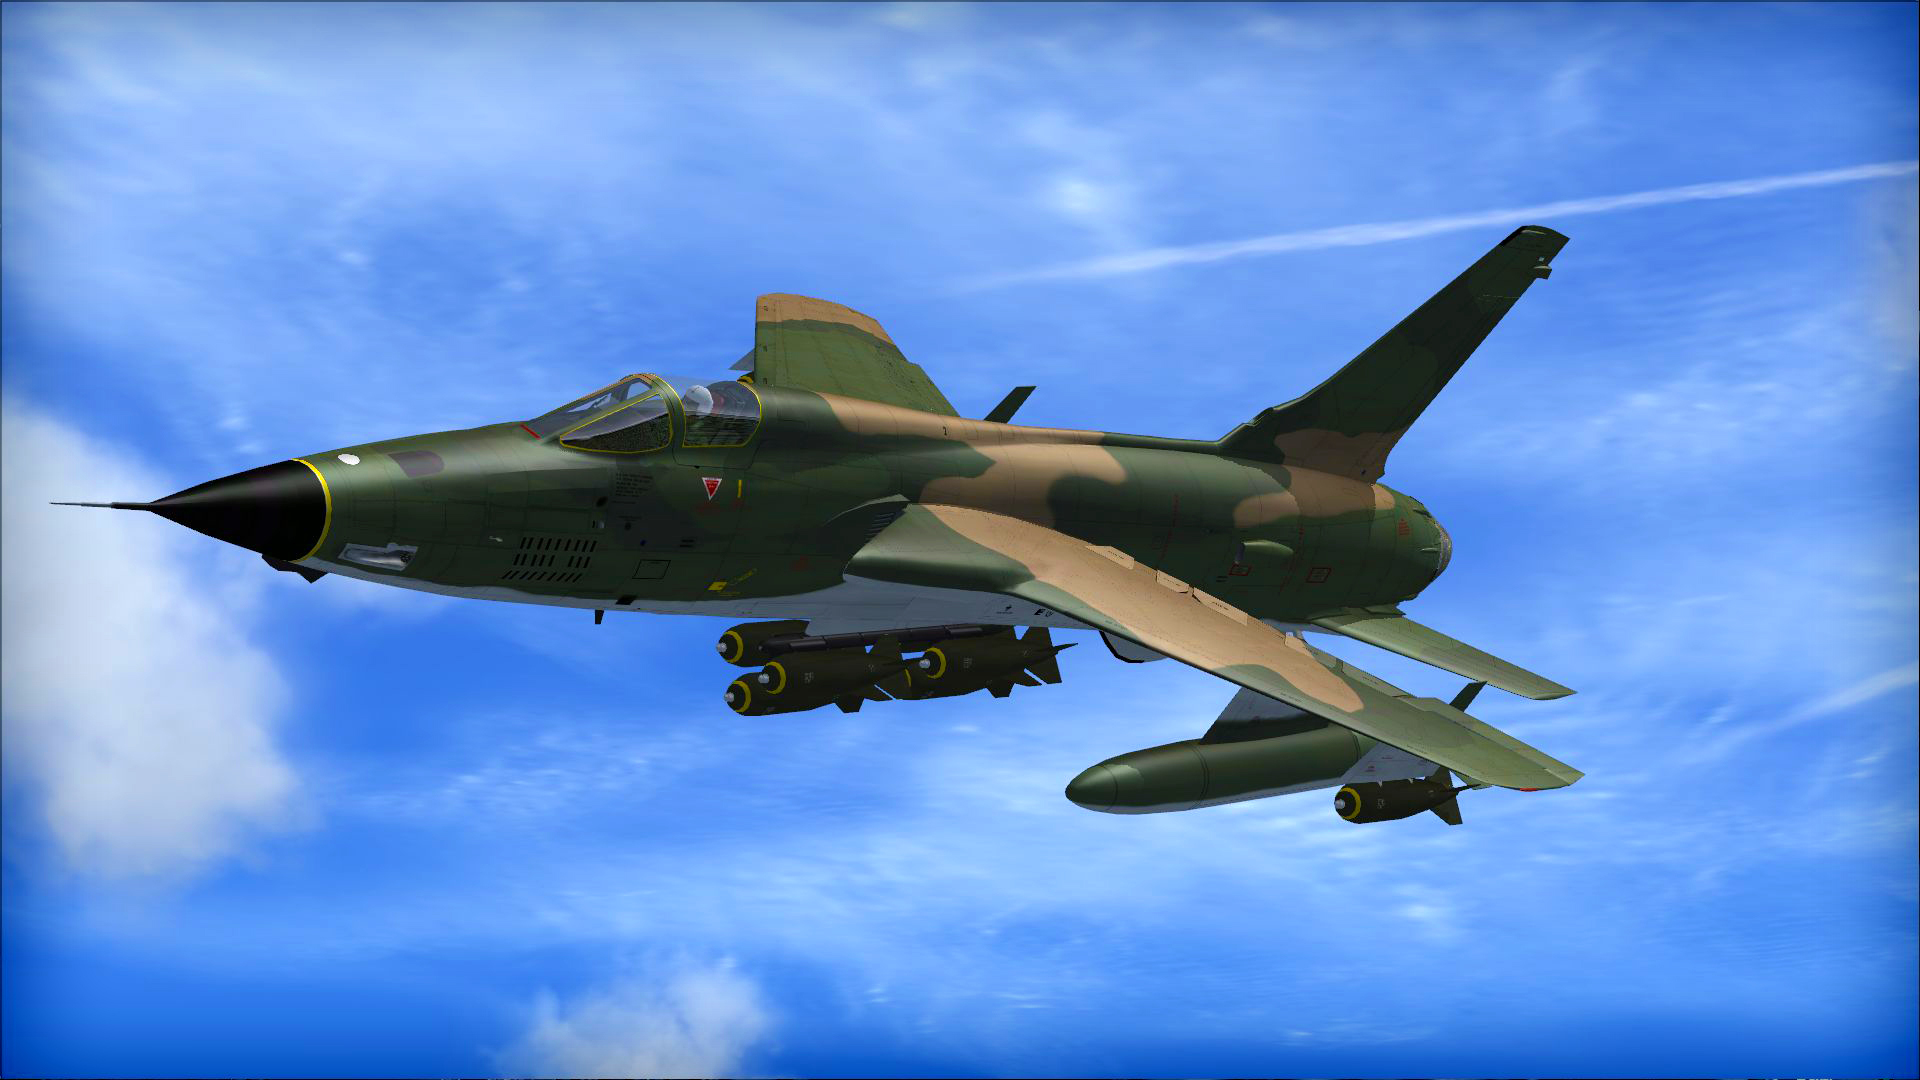 Jul 8, 2016 F-105D Thunderchief out now for FSX: Steam Edition